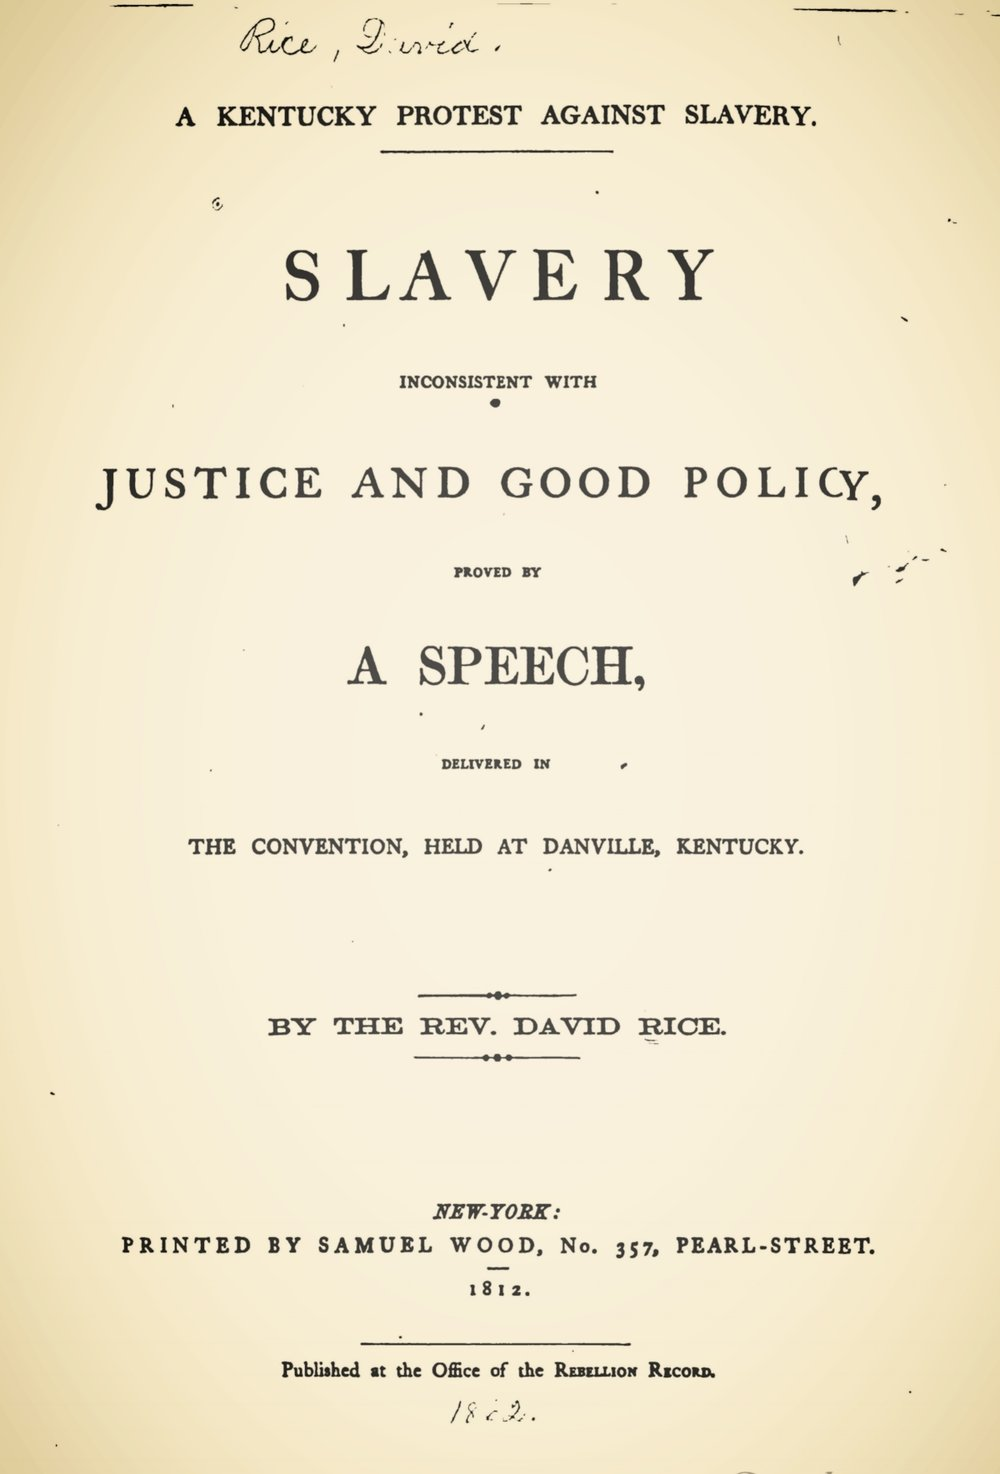 Rice, David, A Kentucky Protest Against Slavery Title Page.jpg